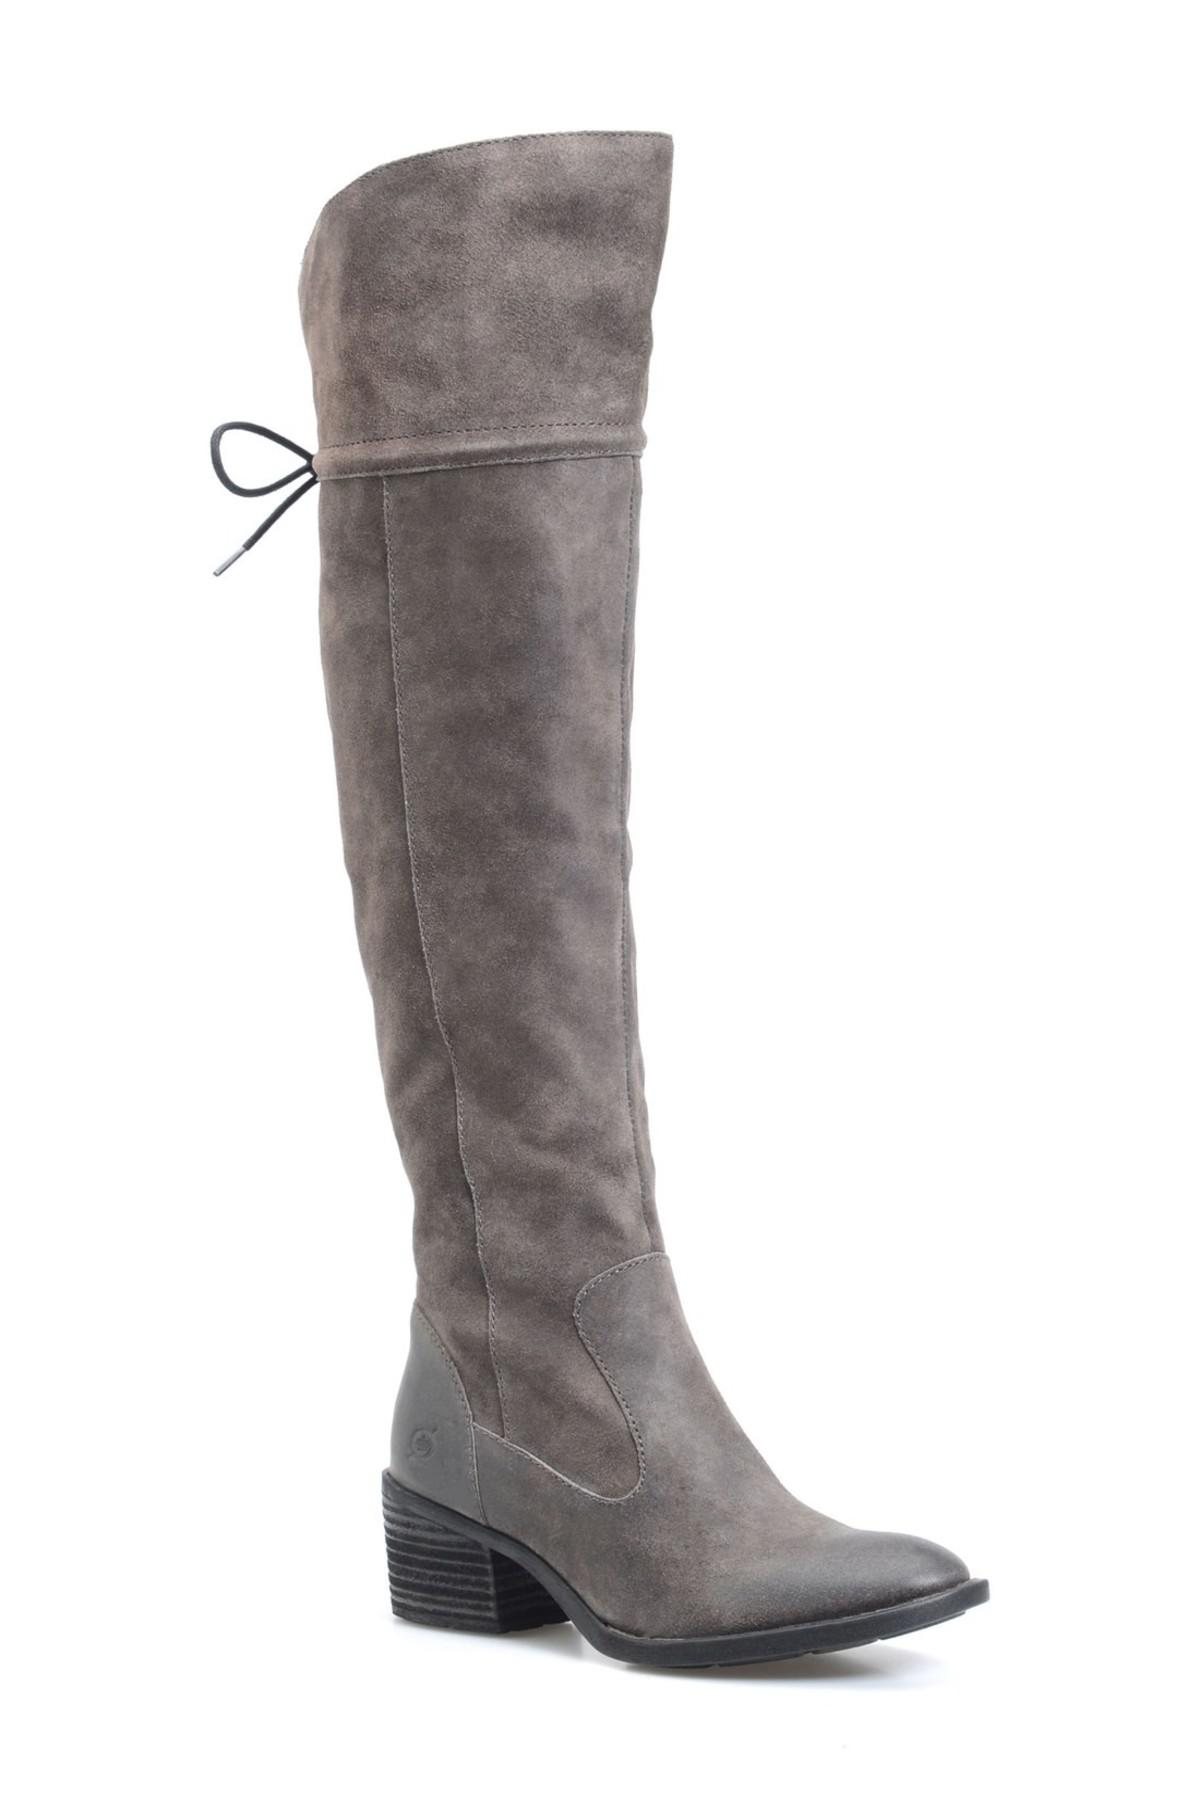 6115f7342c2 Lyst - Born Gallinara Over The Knee Boot in Gray